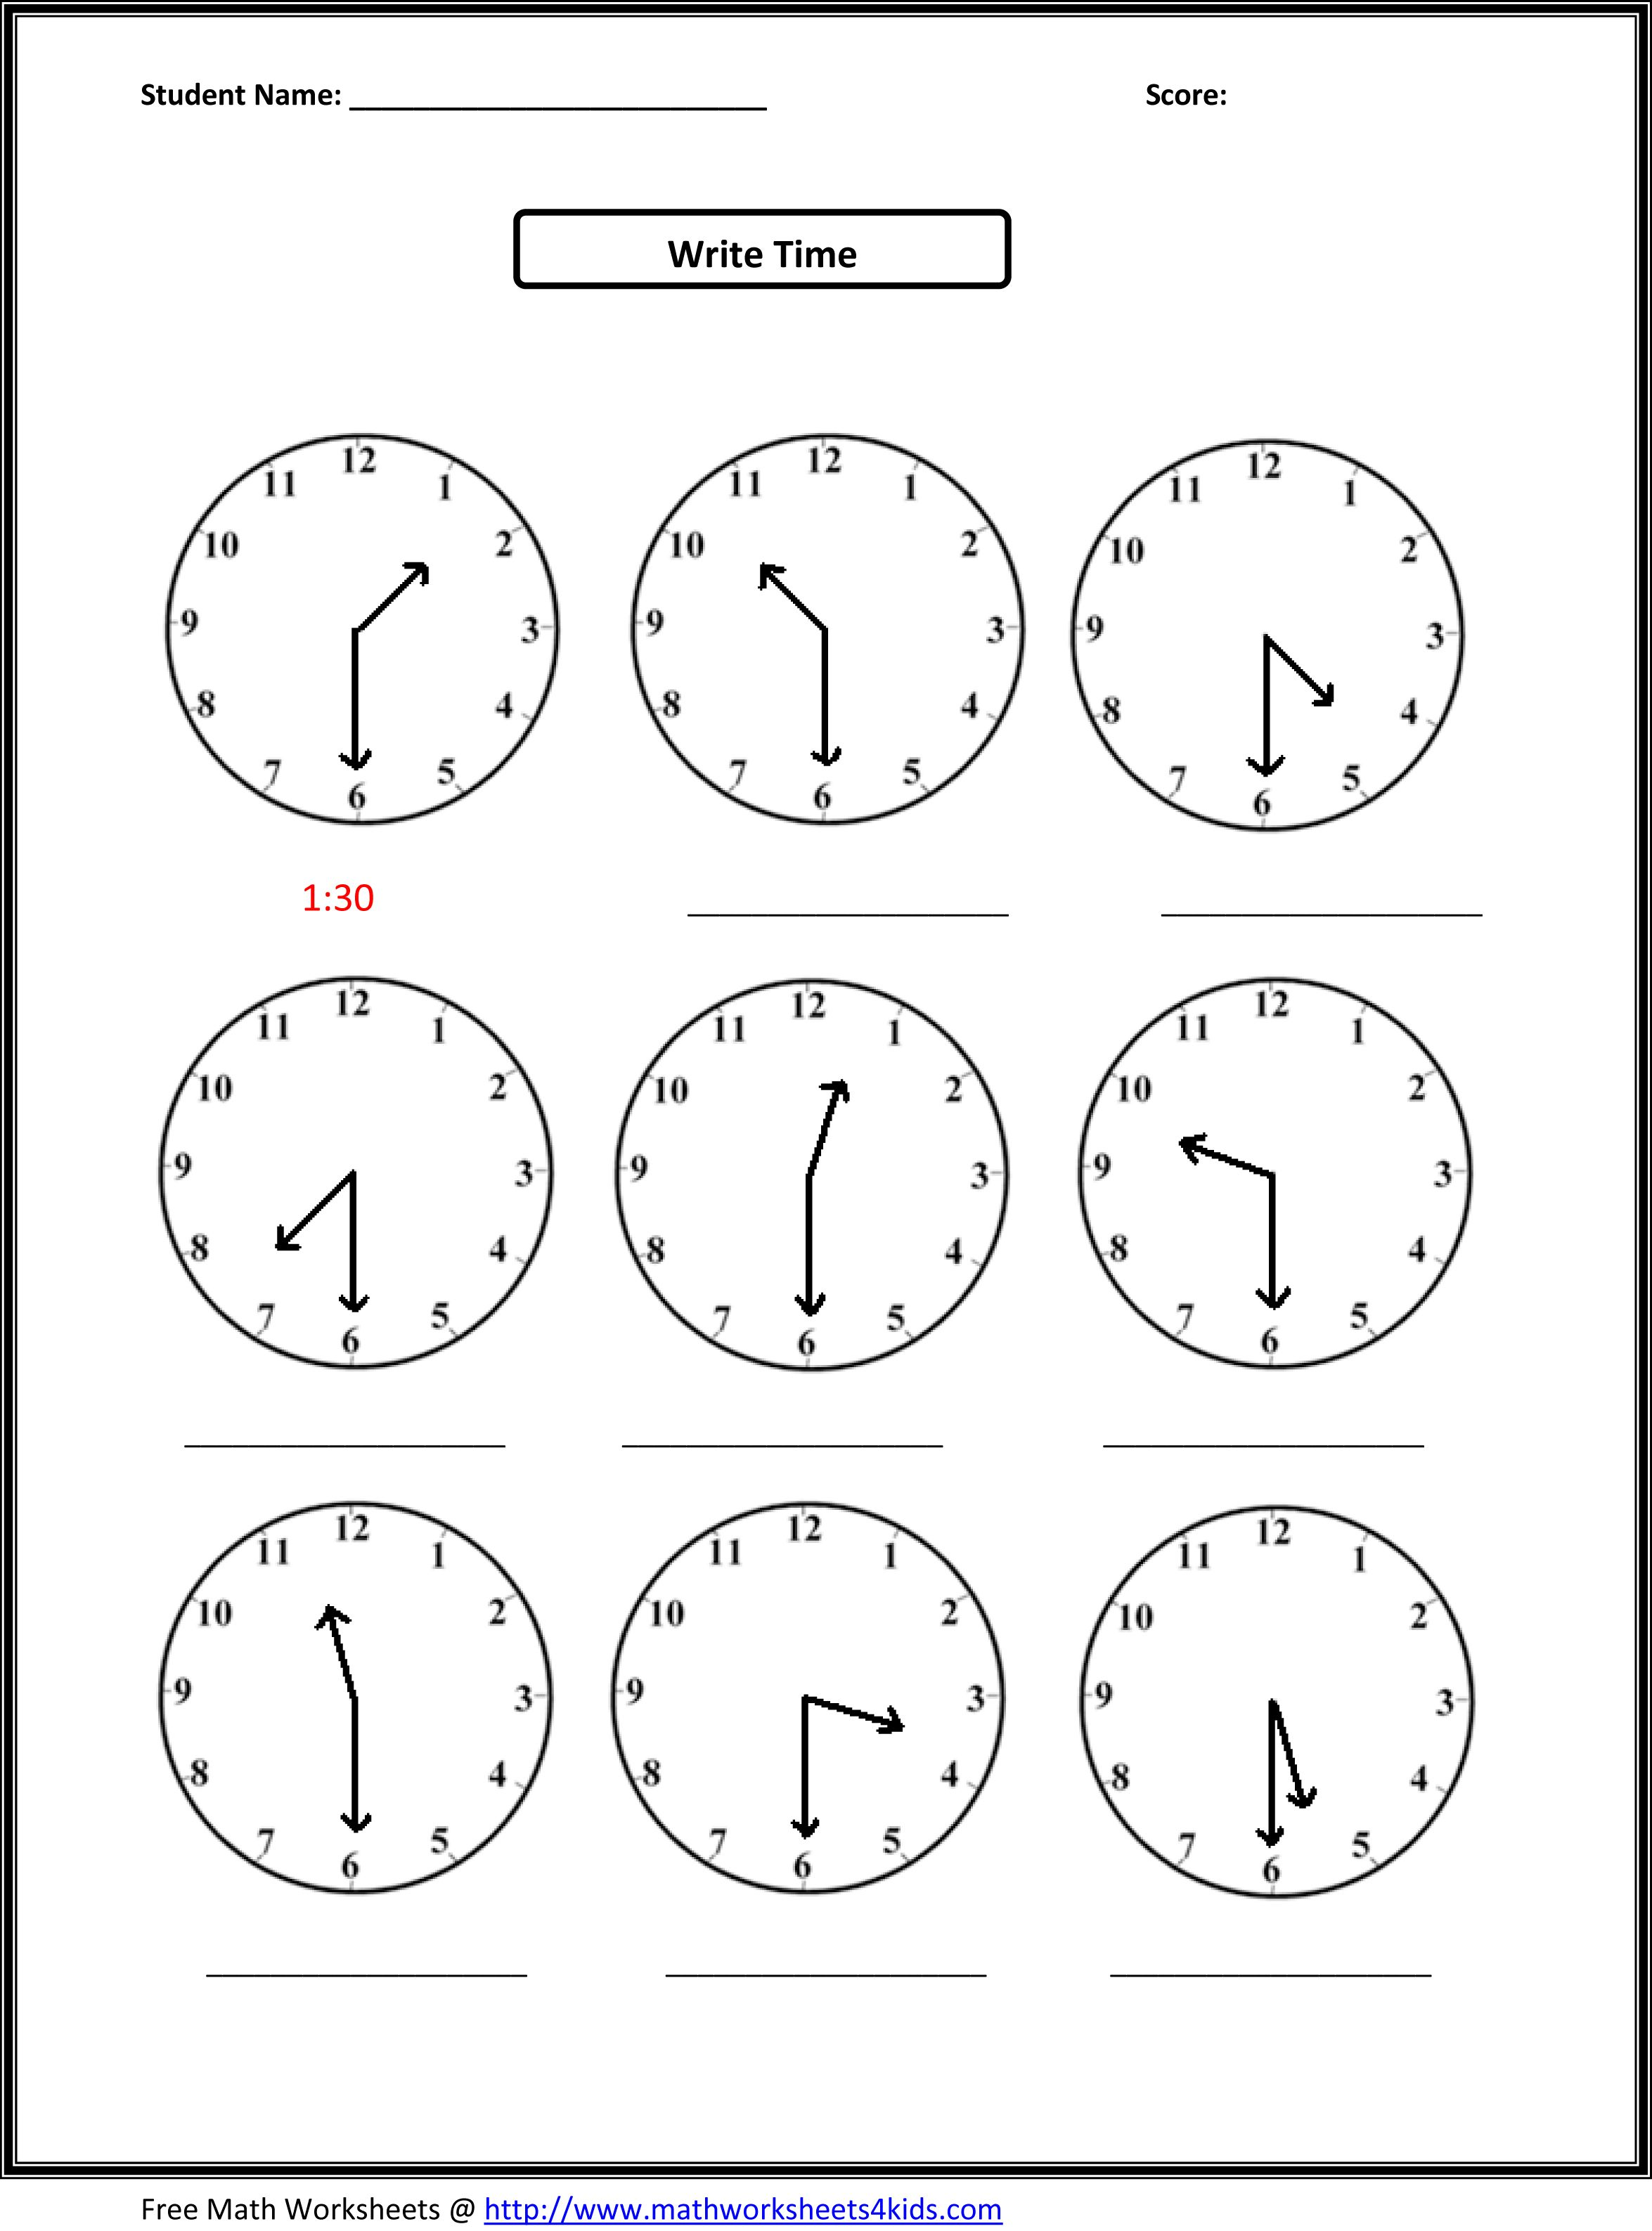 Proatmealus  Pleasing Worksheet On Time For Grade   Reocurent With Inspiring Free Printable Telling Time Worksheets Nd Grade  Reocurent With Lovely Literary Elements Worksheet Also Codominance Worksheet In Addition Impulse Control Worksheets And Significant Figures Worksheet Chemistry As Well As Identifying Transformations Worksheet Additionally Inductive Bible Study Worksheet From Reocurentcom With Proatmealus  Inspiring Worksheet On Time For Grade   Reocurent With Lovely Free Printable Telling Time Worksheets Nd Grade  Reocurent And Pleasing Literary Elements Worksheet Also Codominance Worksheet In Addition Impulse Control Worksheets From Reocurentcom